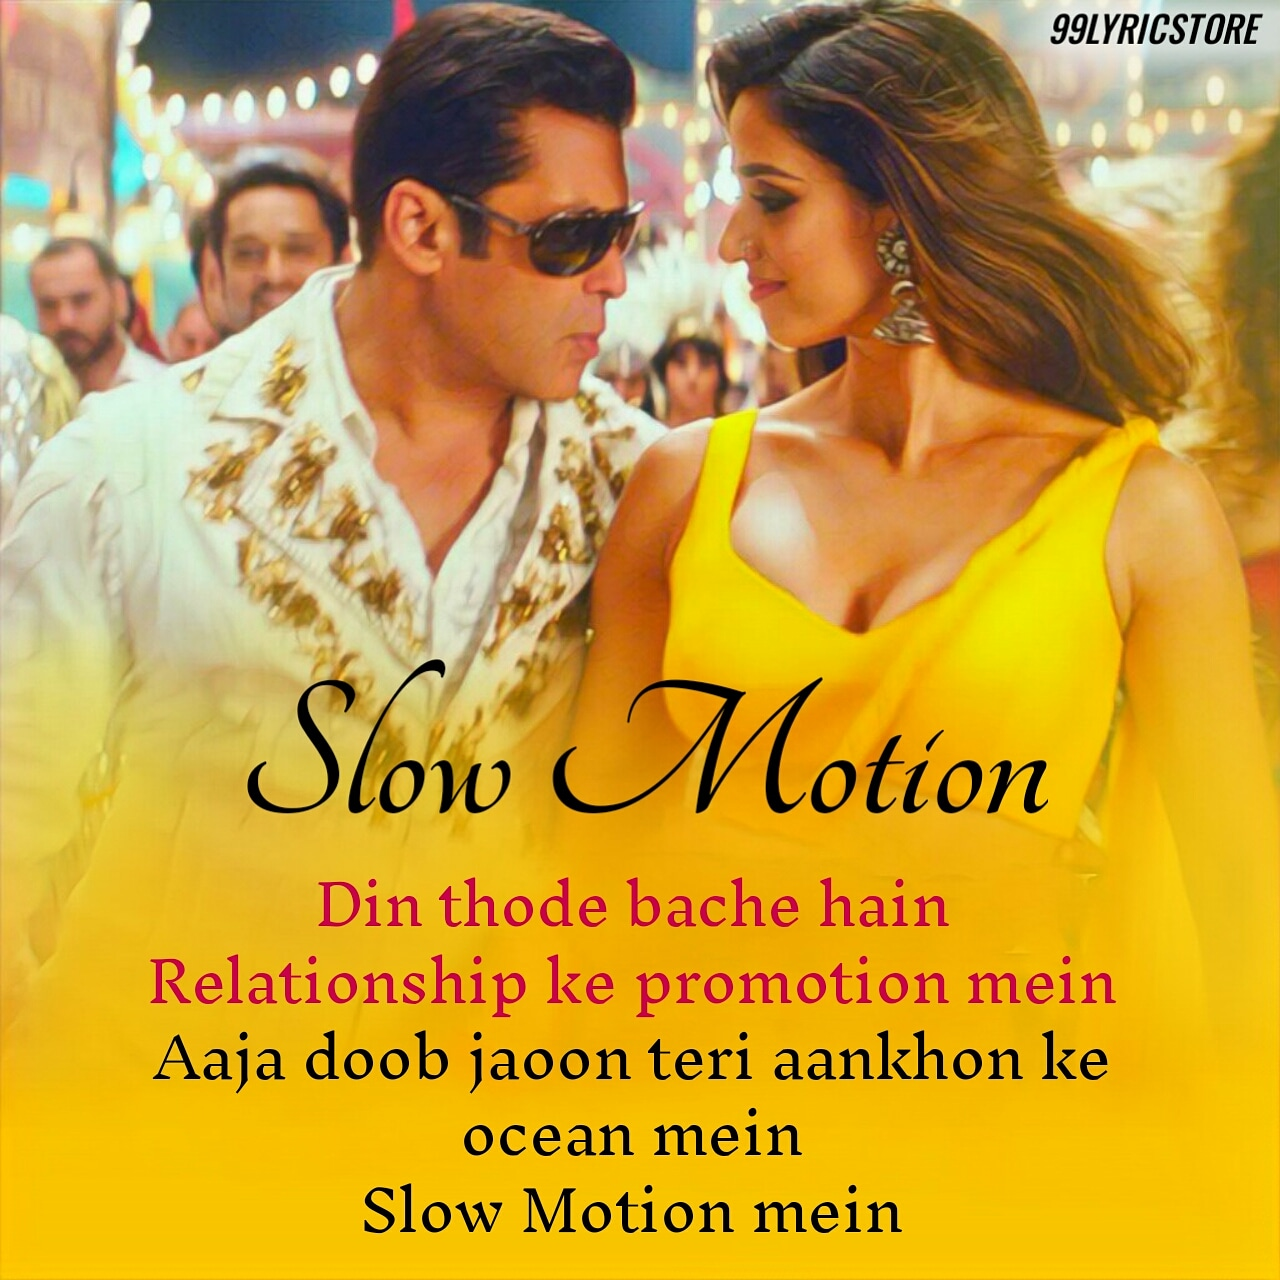 TOP 20 LATEST BOLLYWOOD SONGS LYRICS WITH QUOTES IMAGES